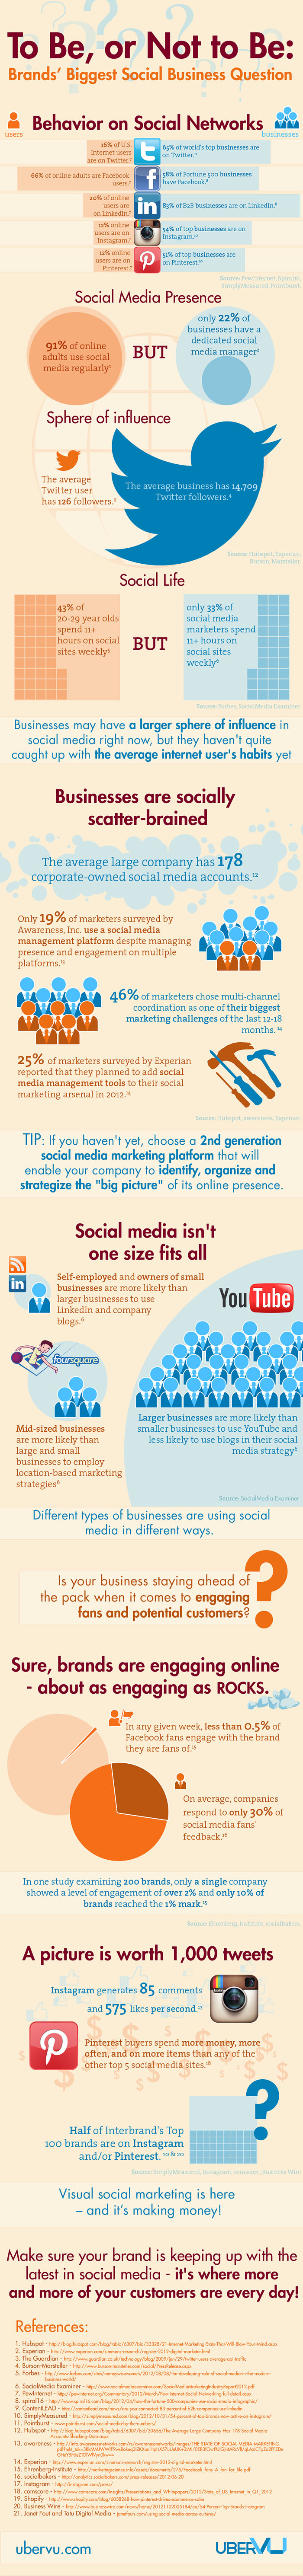 Social Business Infographic Why Brands Must Embrace Visual Social Media in 2013